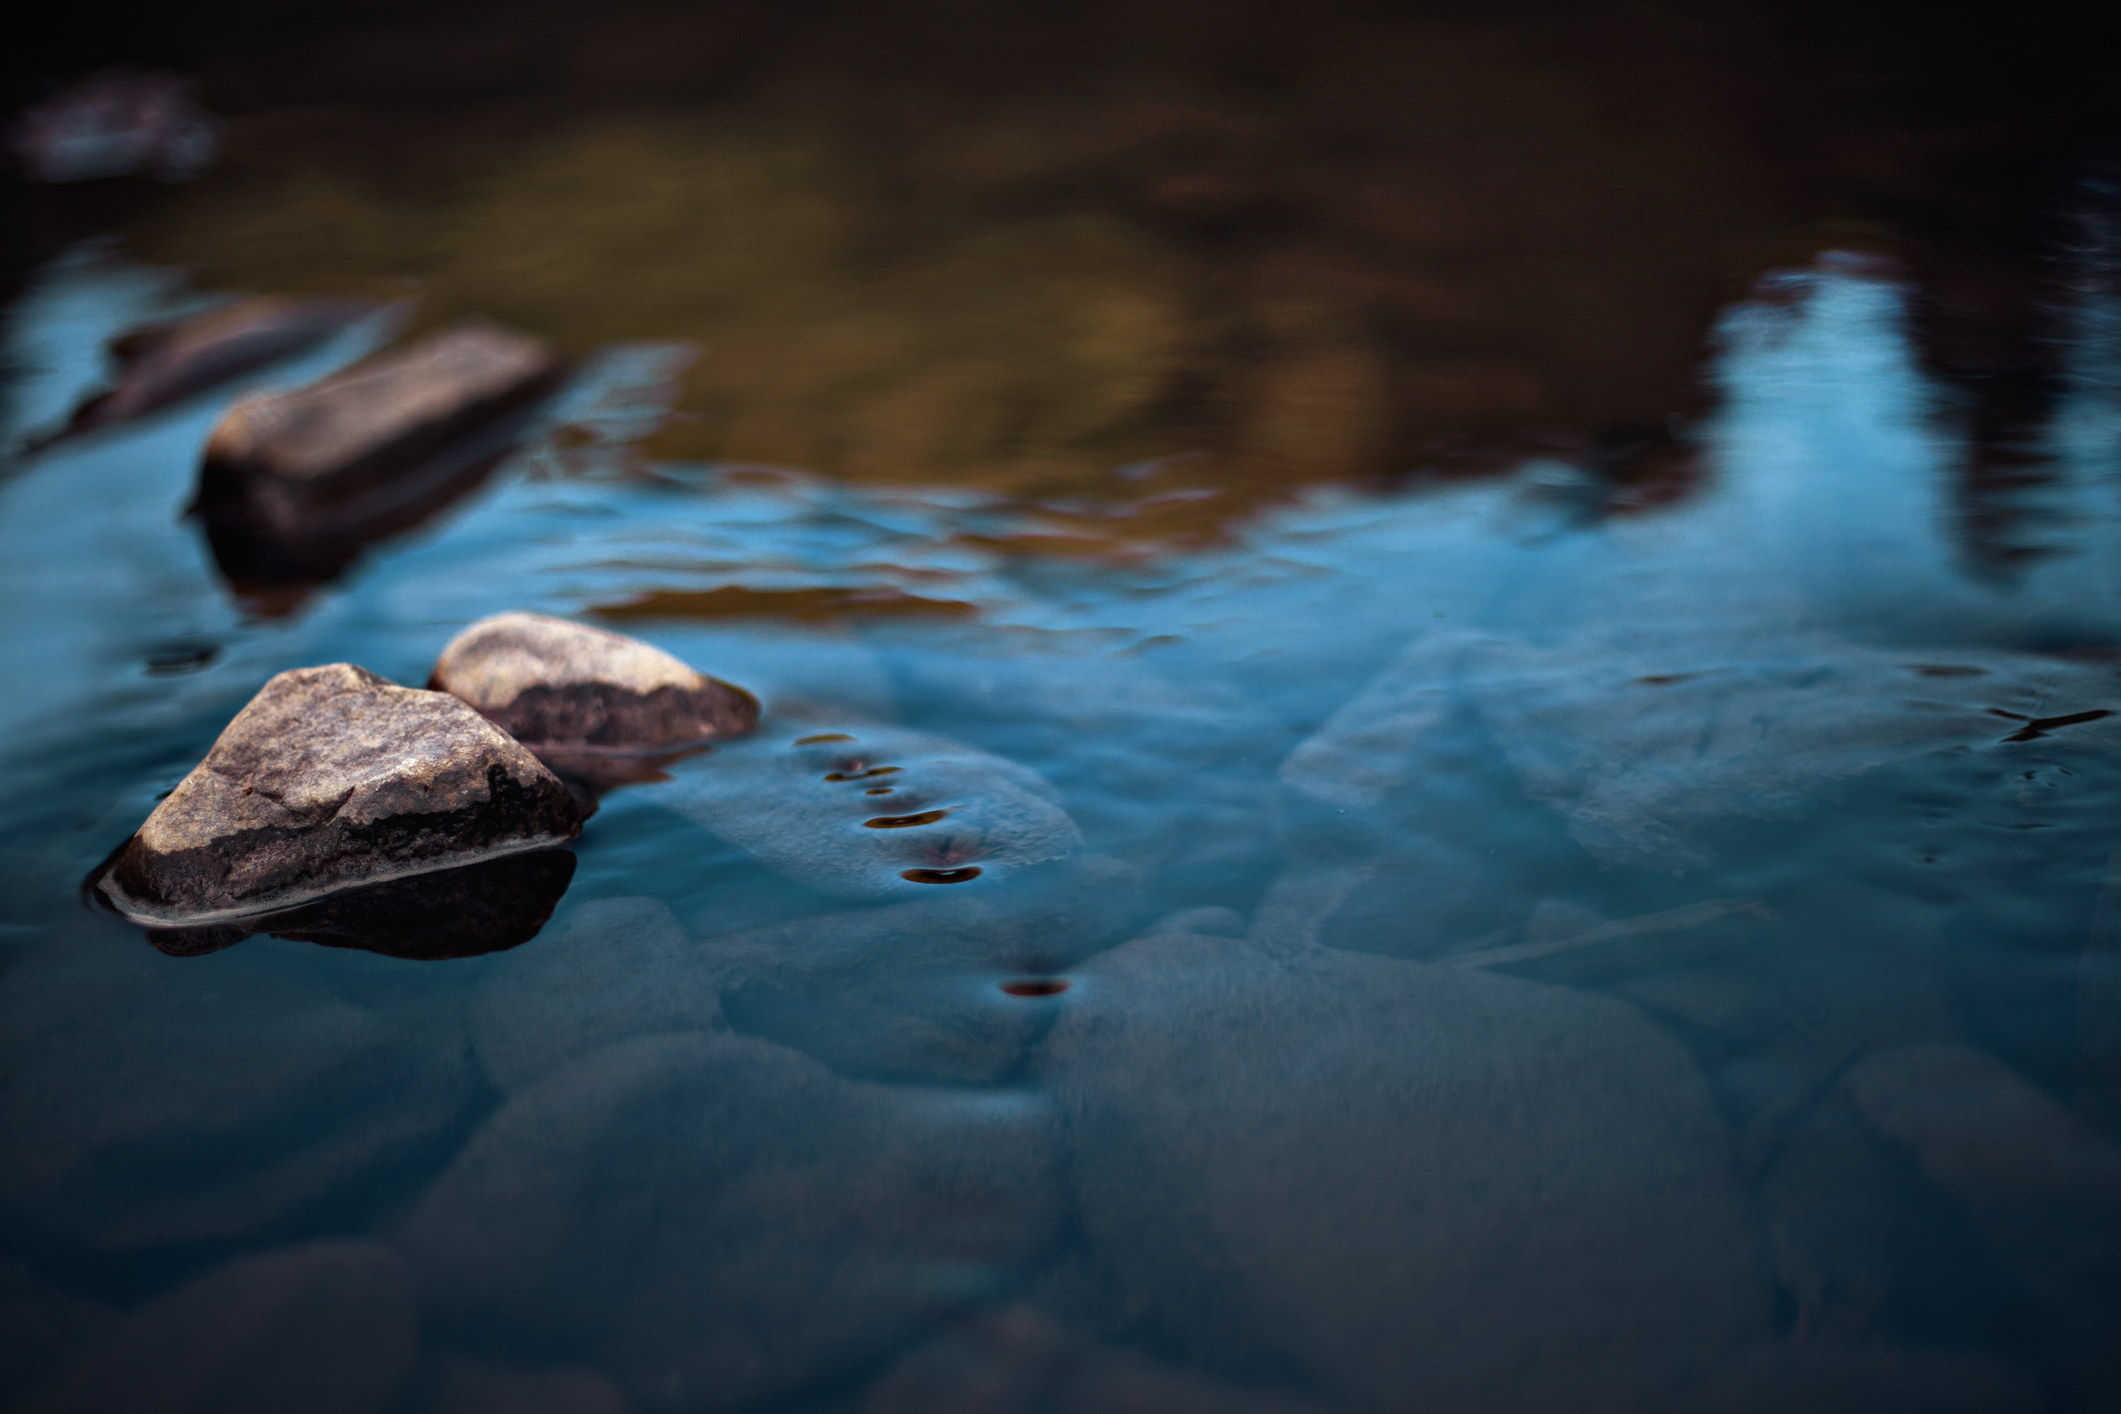 Rocks in stream with smooth flowing water